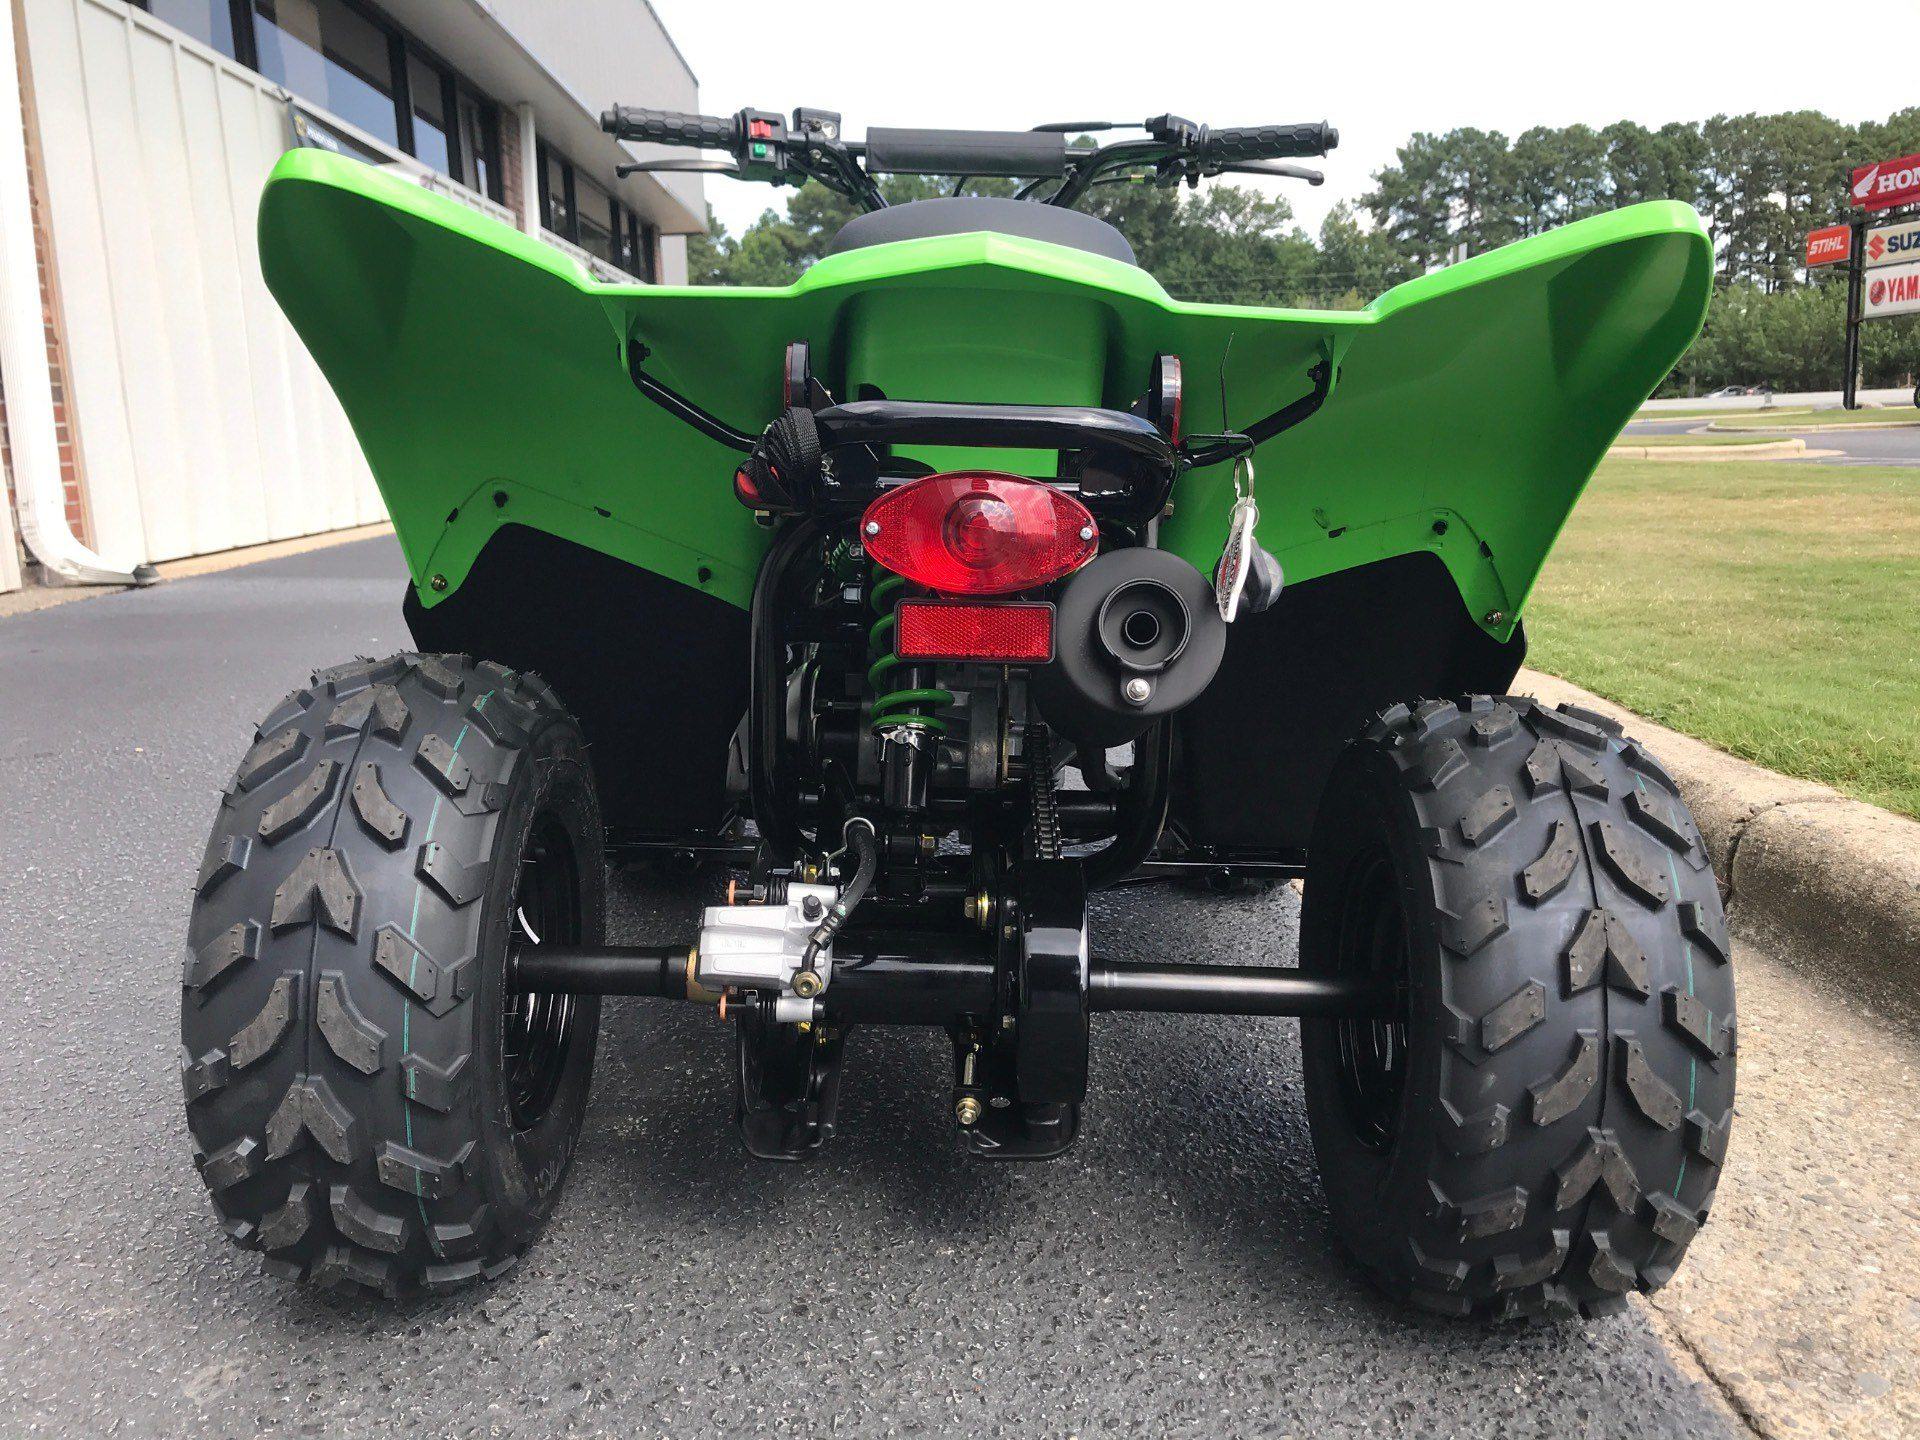 2021 Kawasaki KFX 50 in Greenville, North Carolina - Photo 7